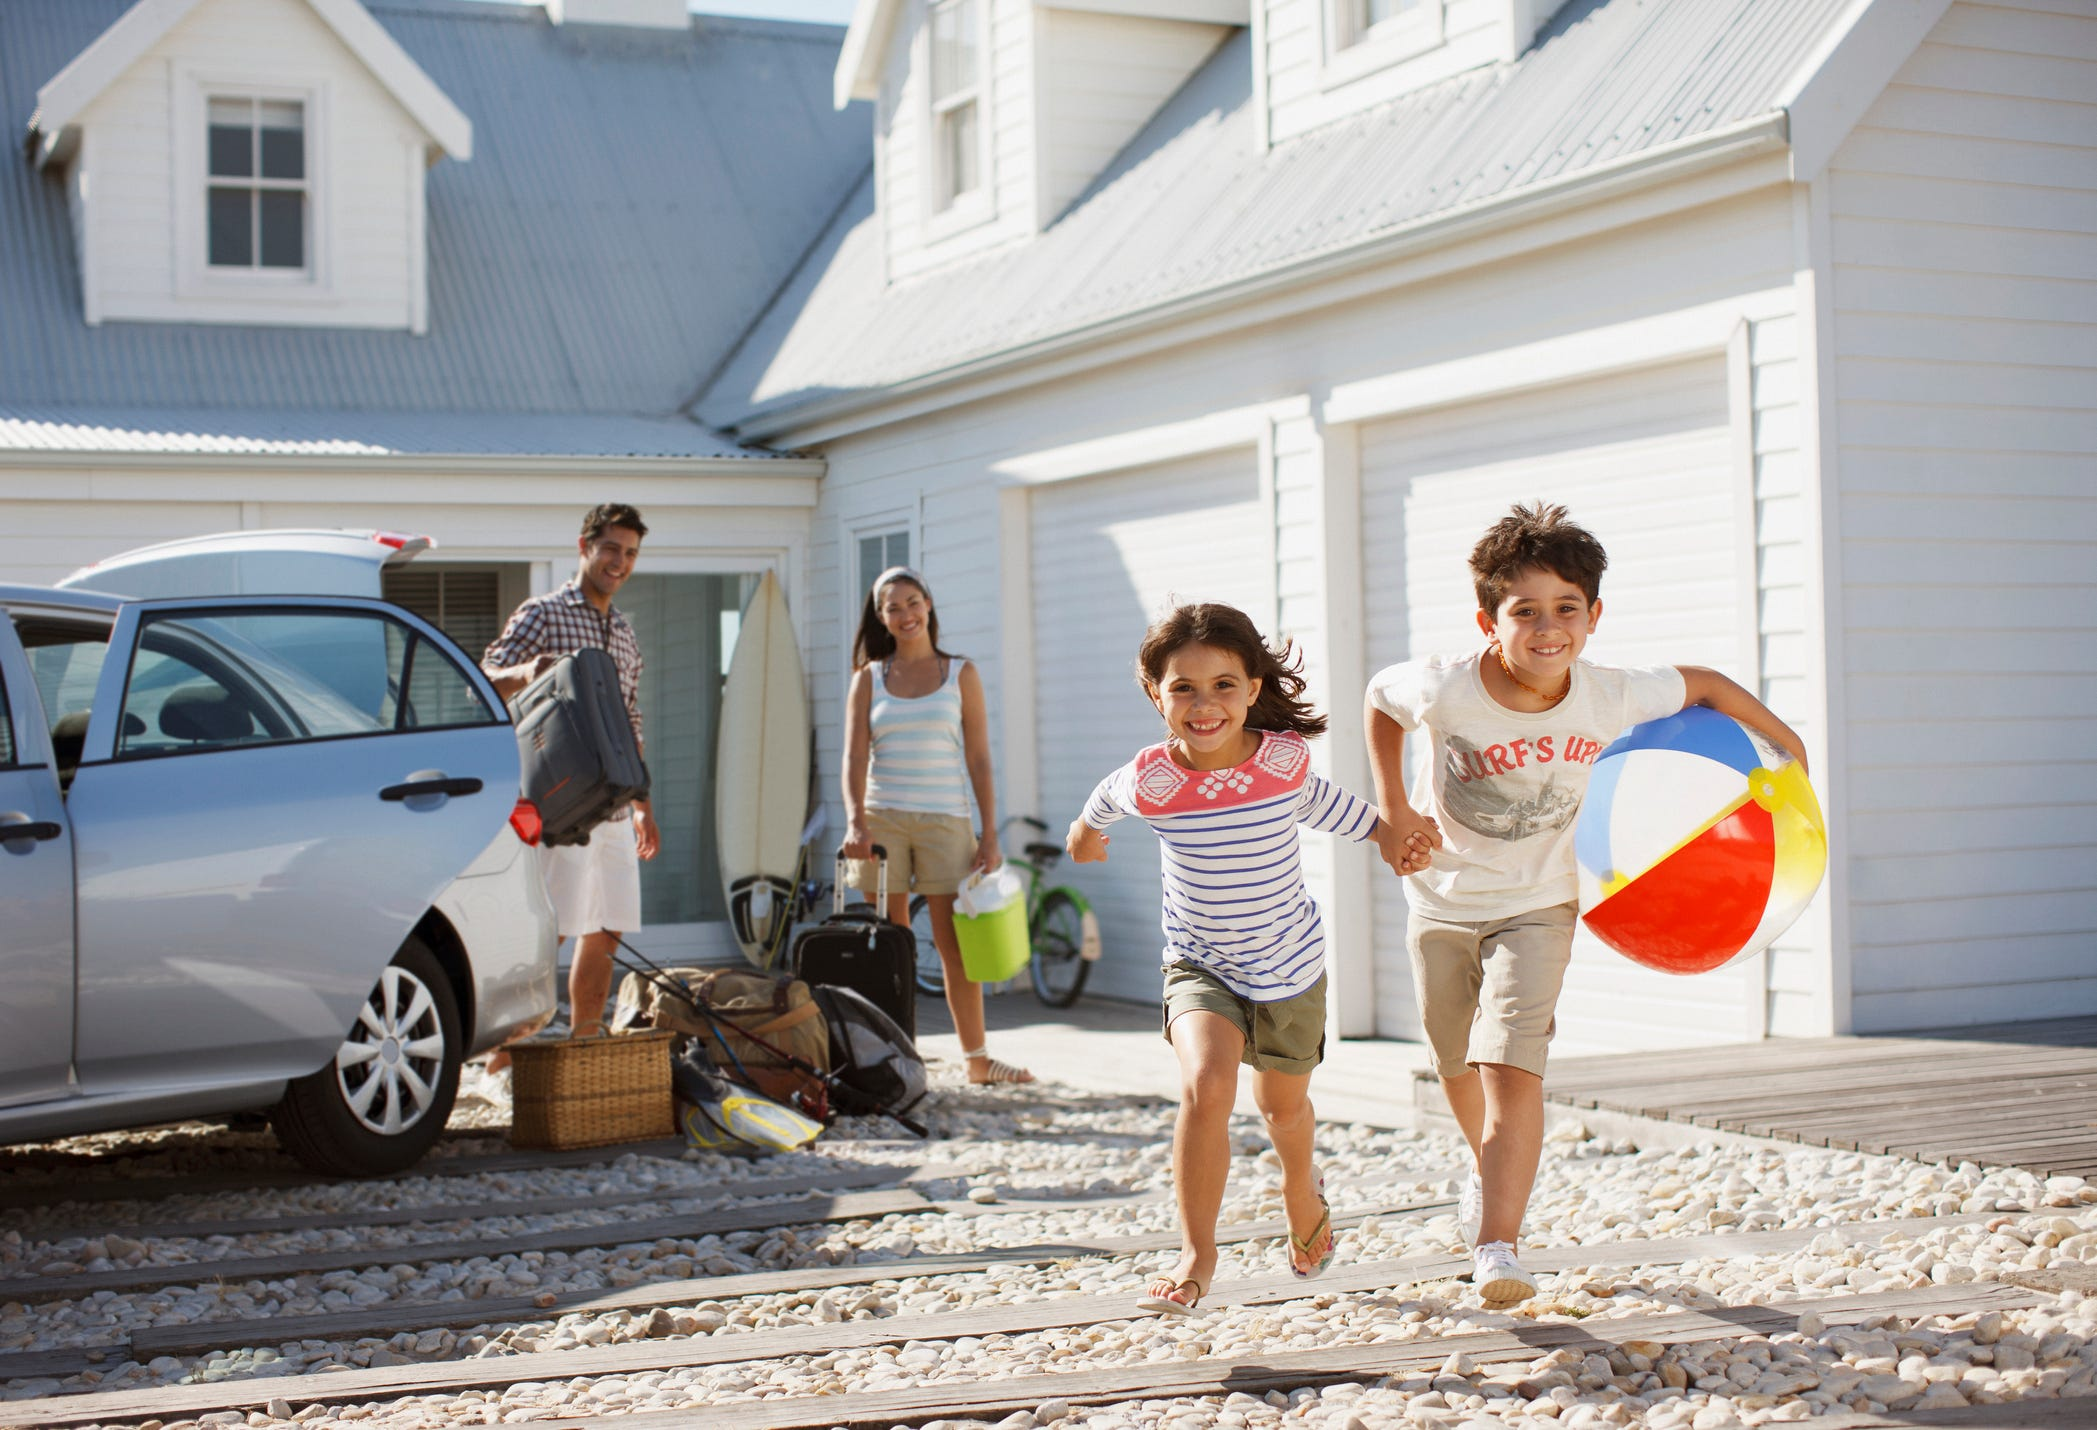 Subscription services, hotels, timeshares compete with vacation rentals for 'workcation' customers